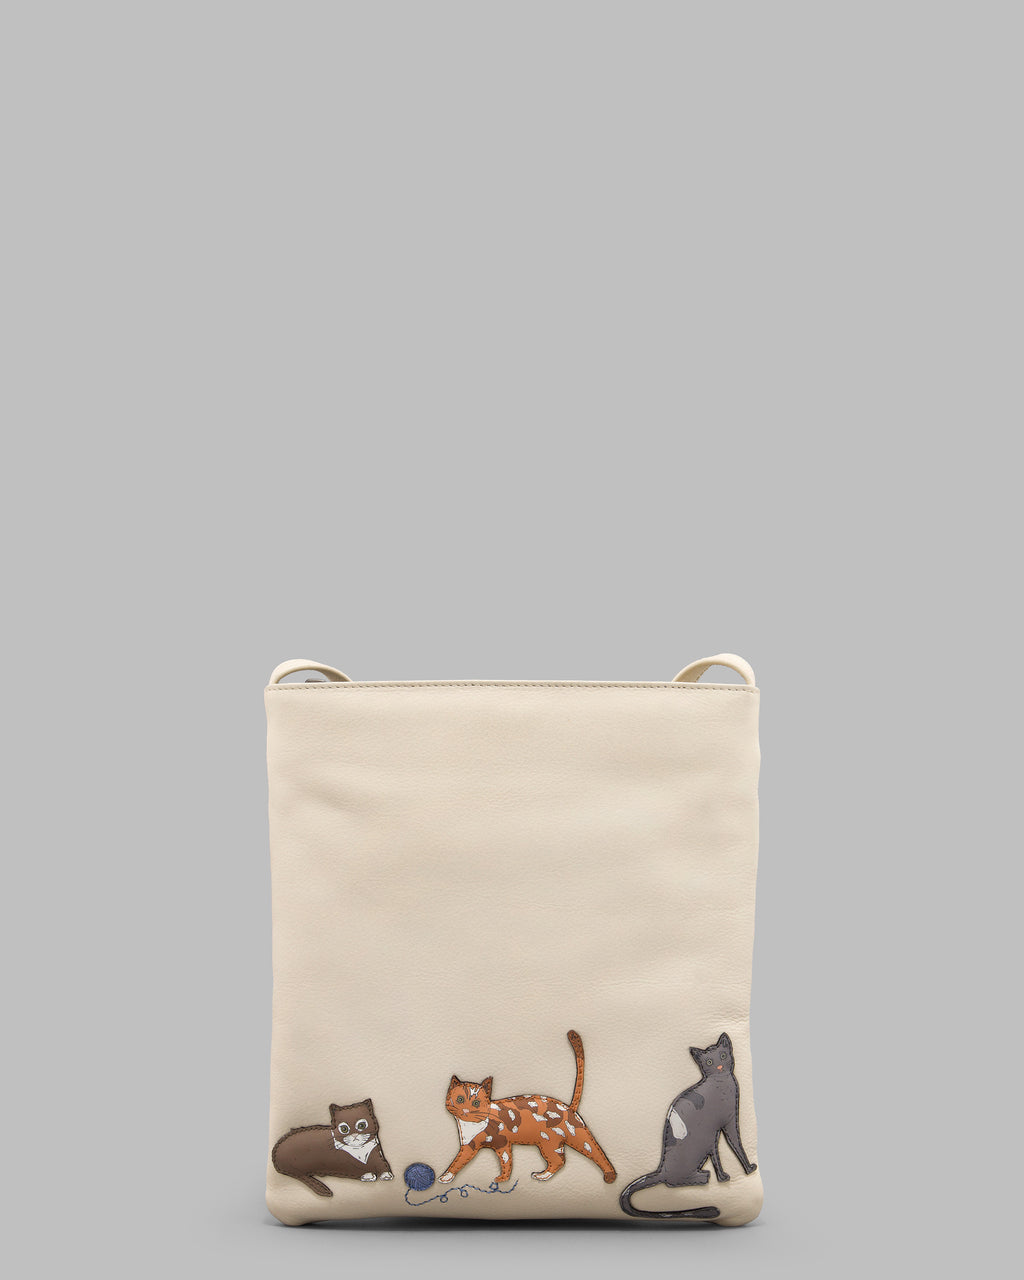 Cats Whiskers Cream Leather Cross Body Bag A